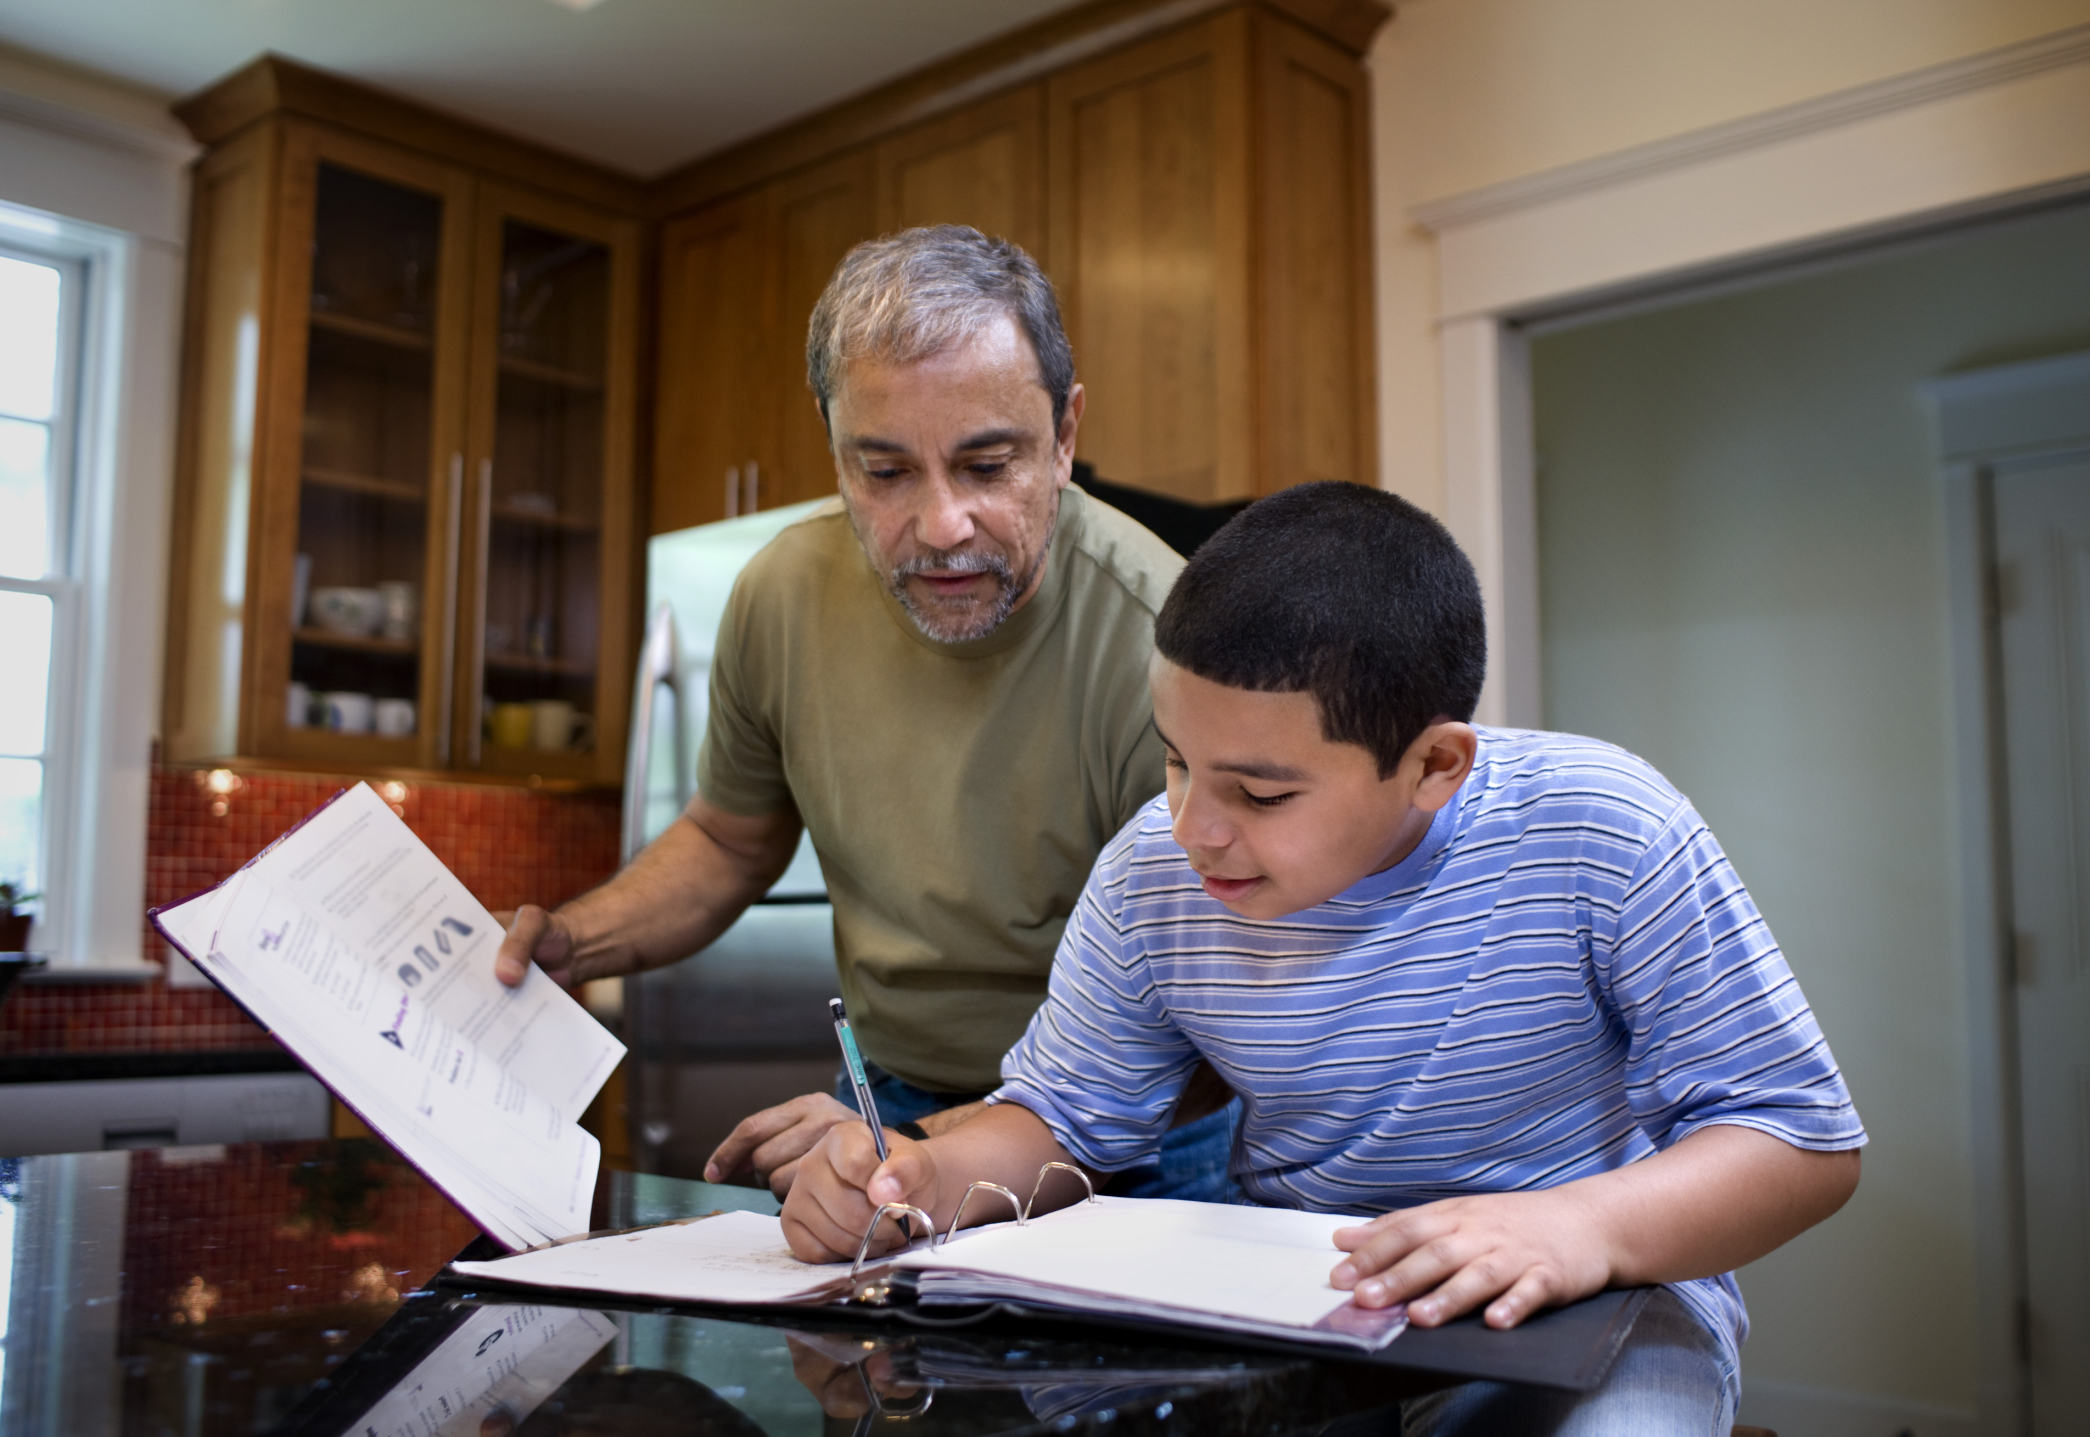 Mentor helping a kid with homework